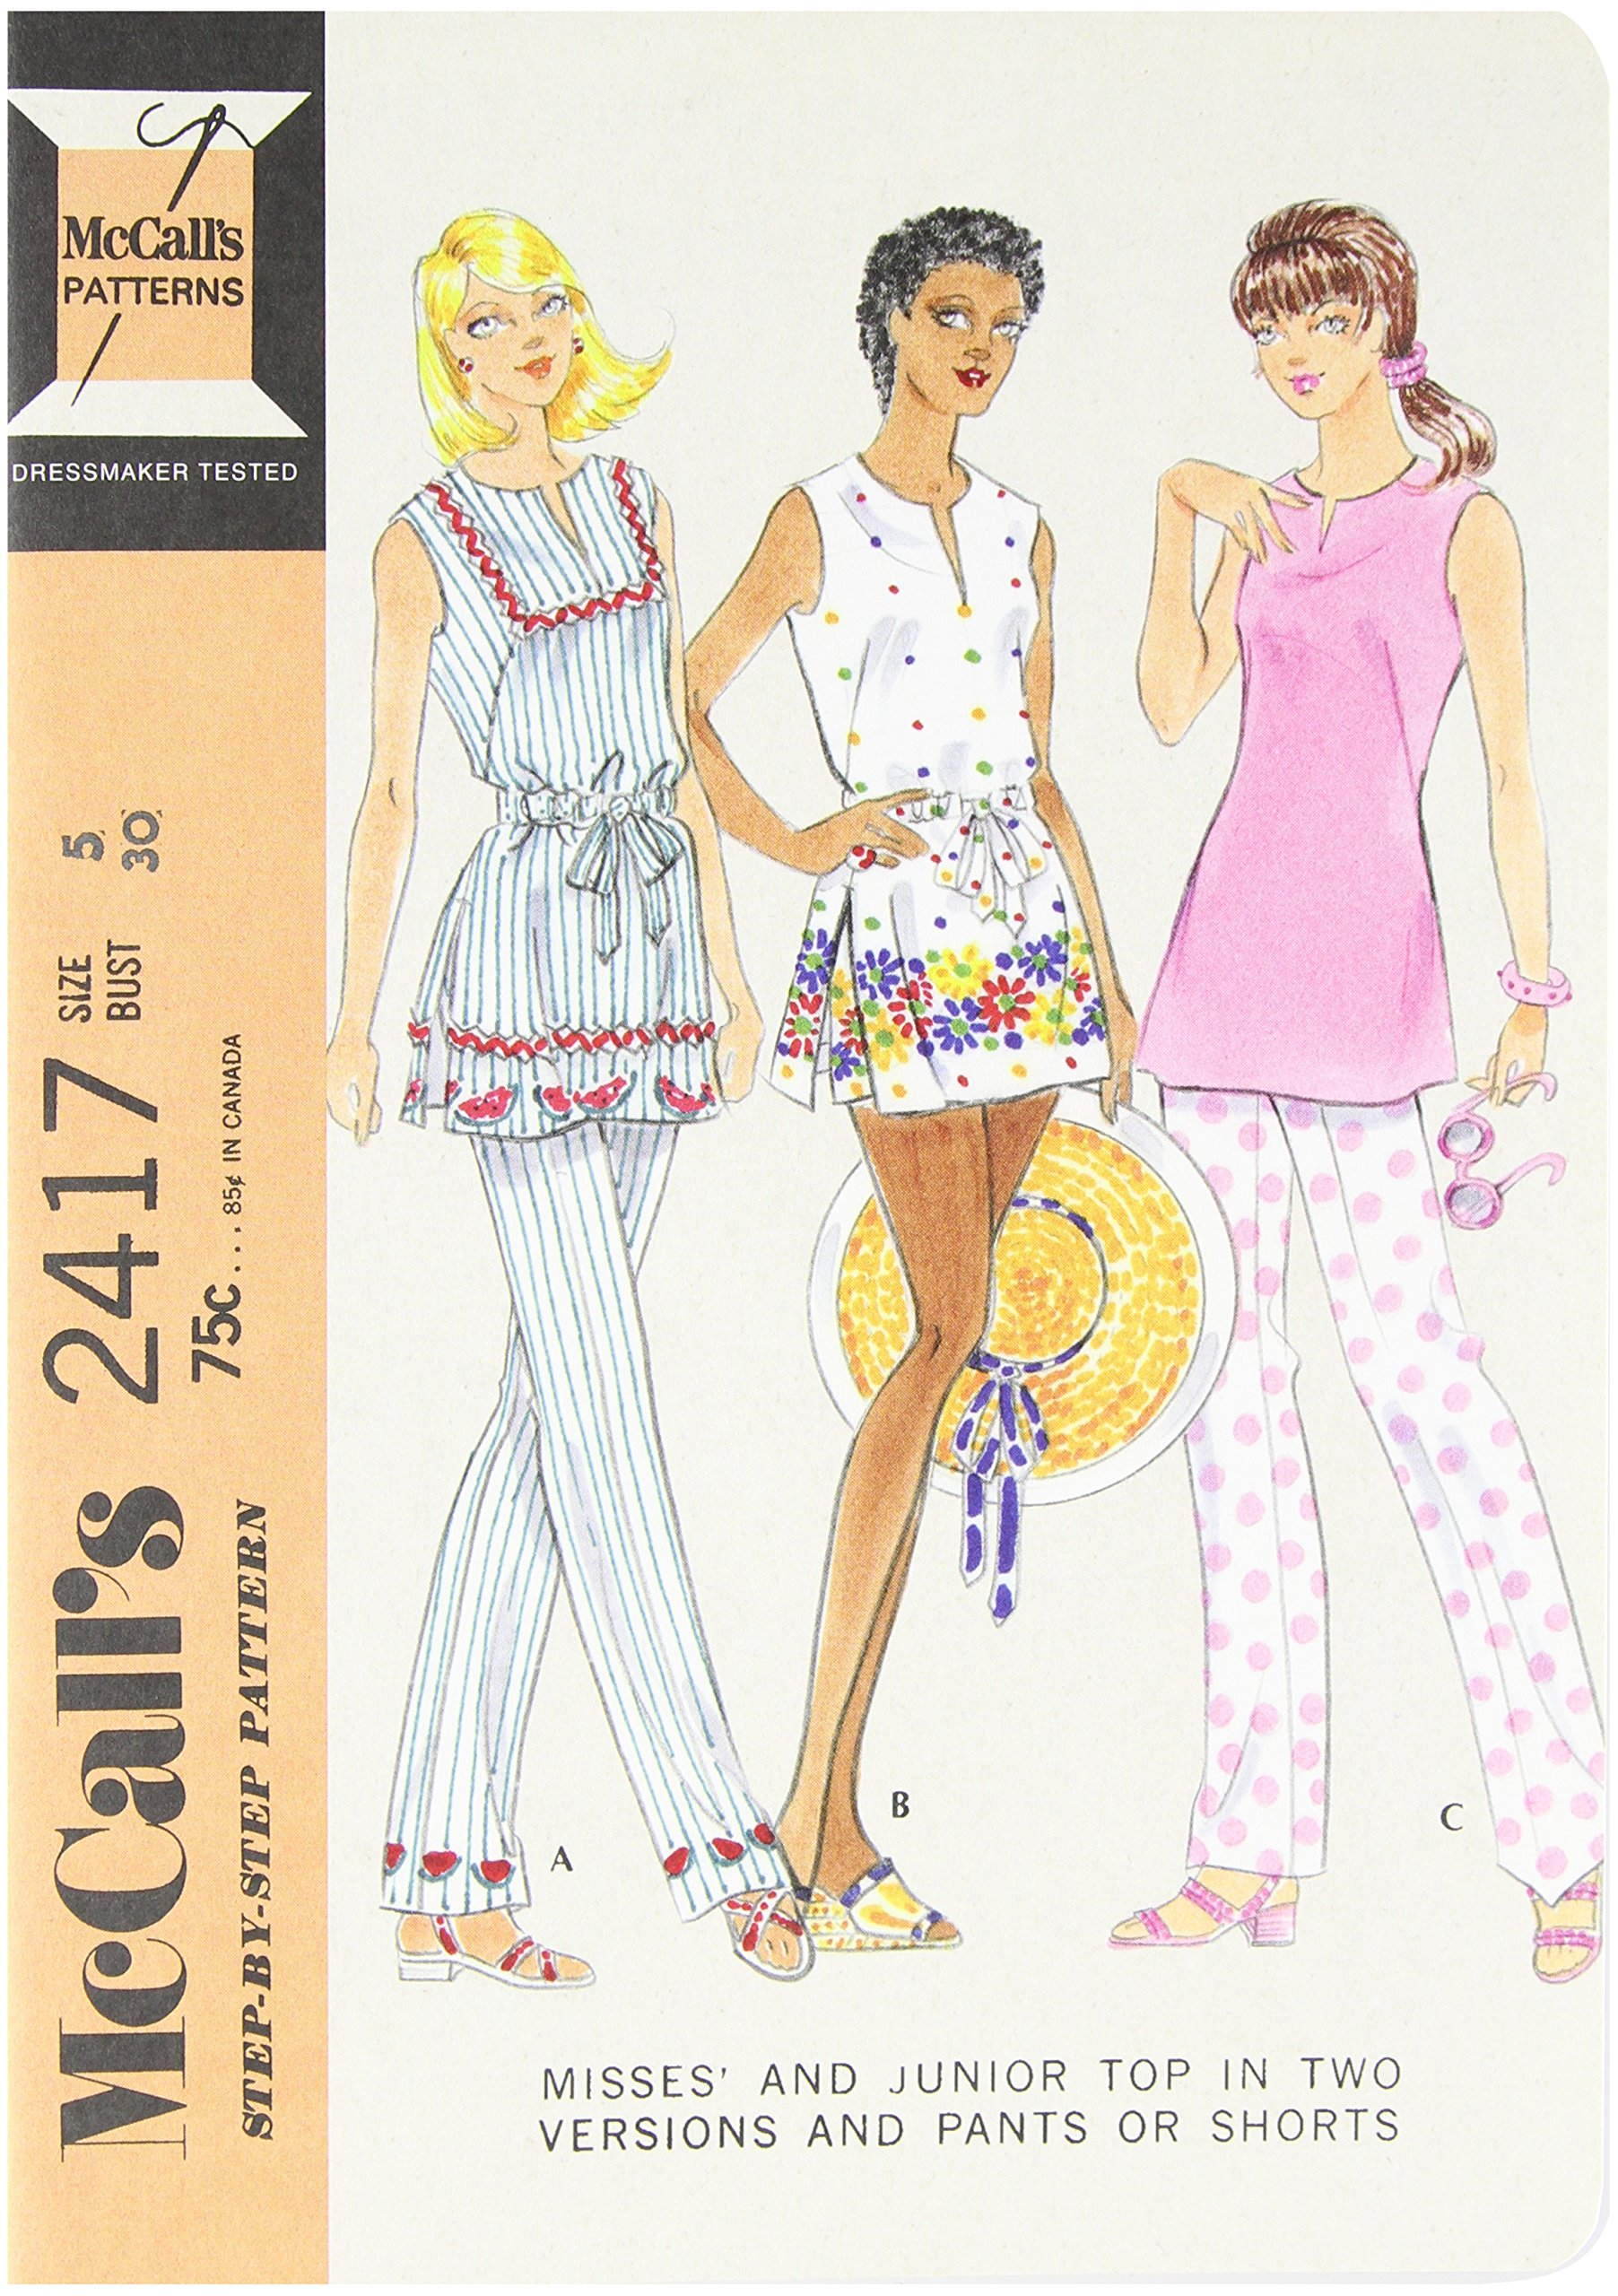 Vintage McCall\'s Patterns Notebook Collection: The McCall Pattern ...